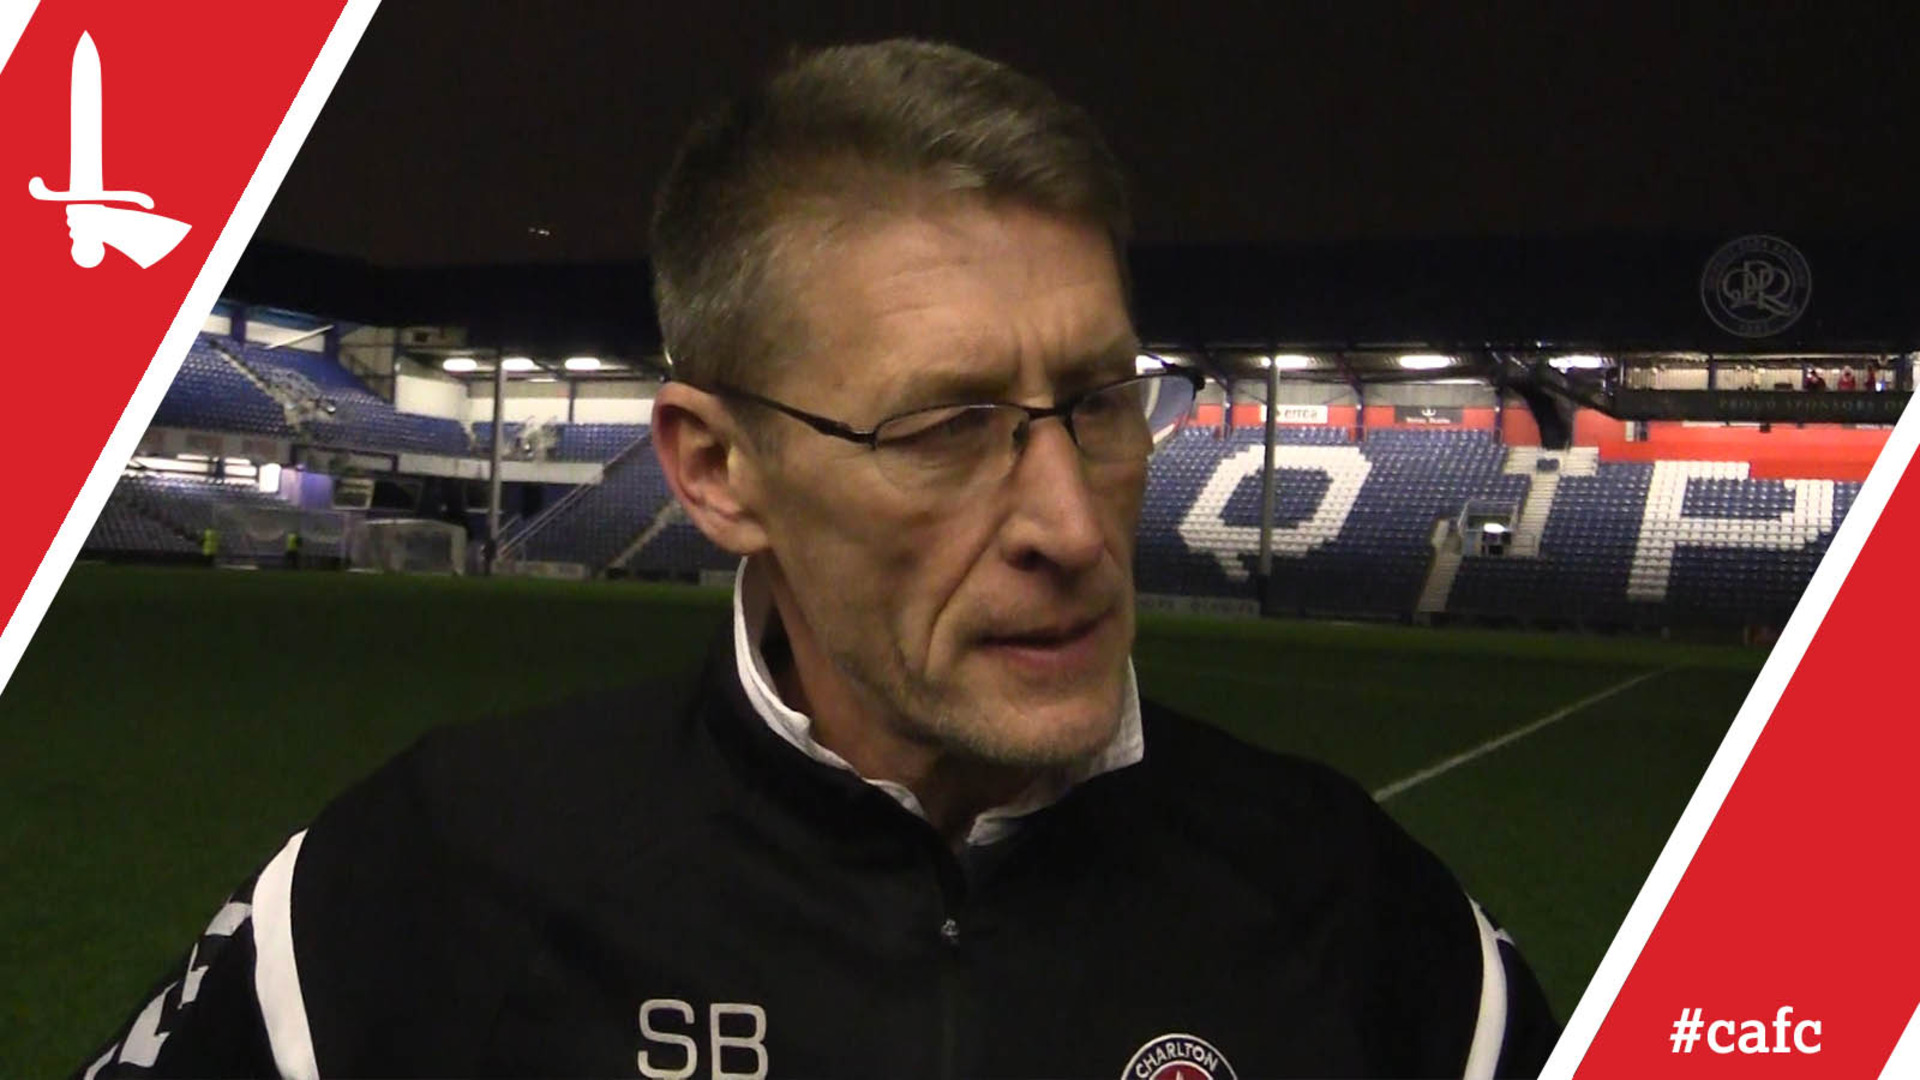 Sergei Baltacha salutes Charlton's U18s after FA Youth Cup win